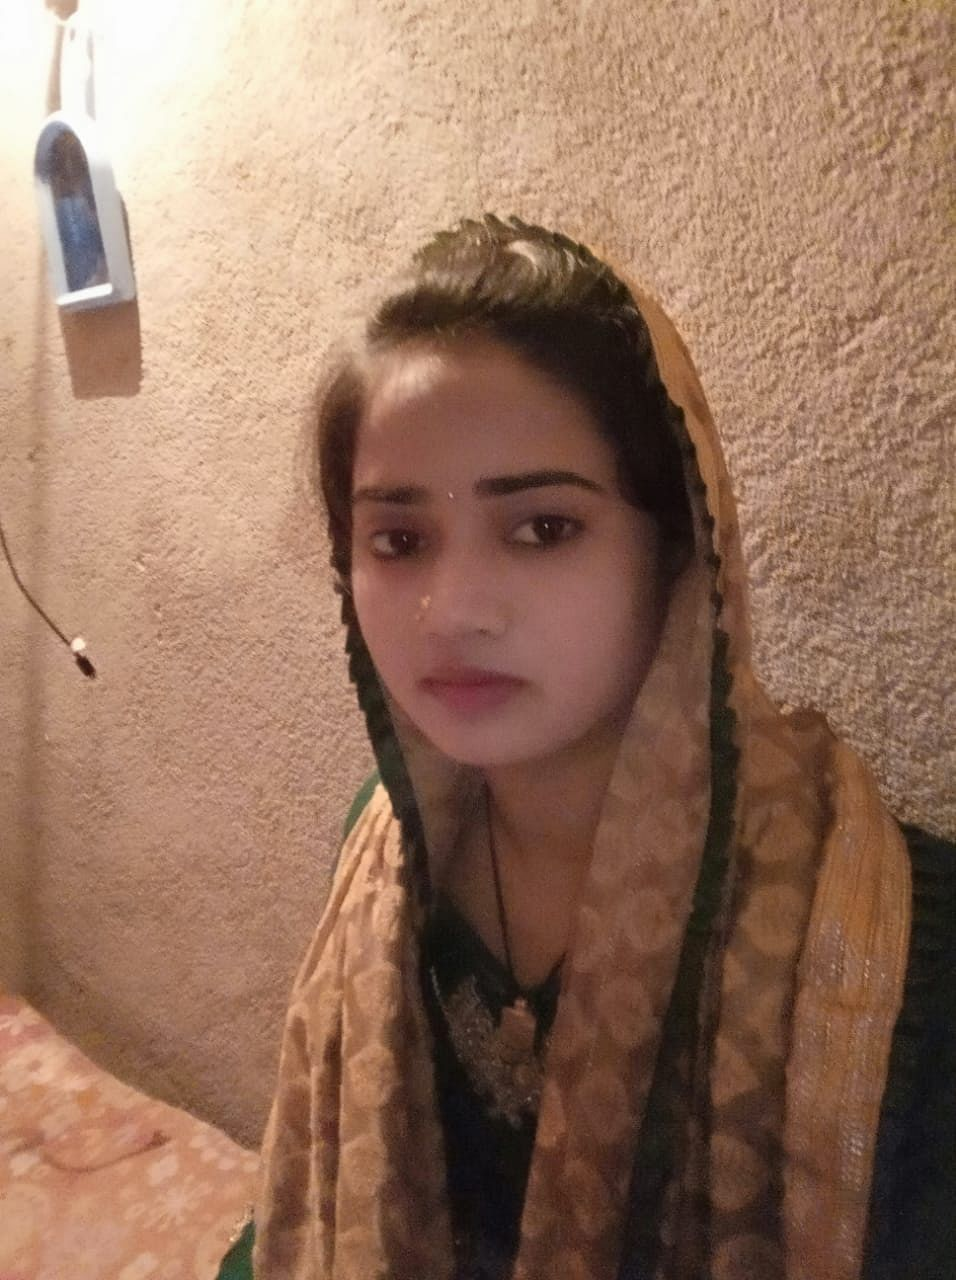 Shahista, who was married to Tabrez for about two months, has moved back to her parents home.